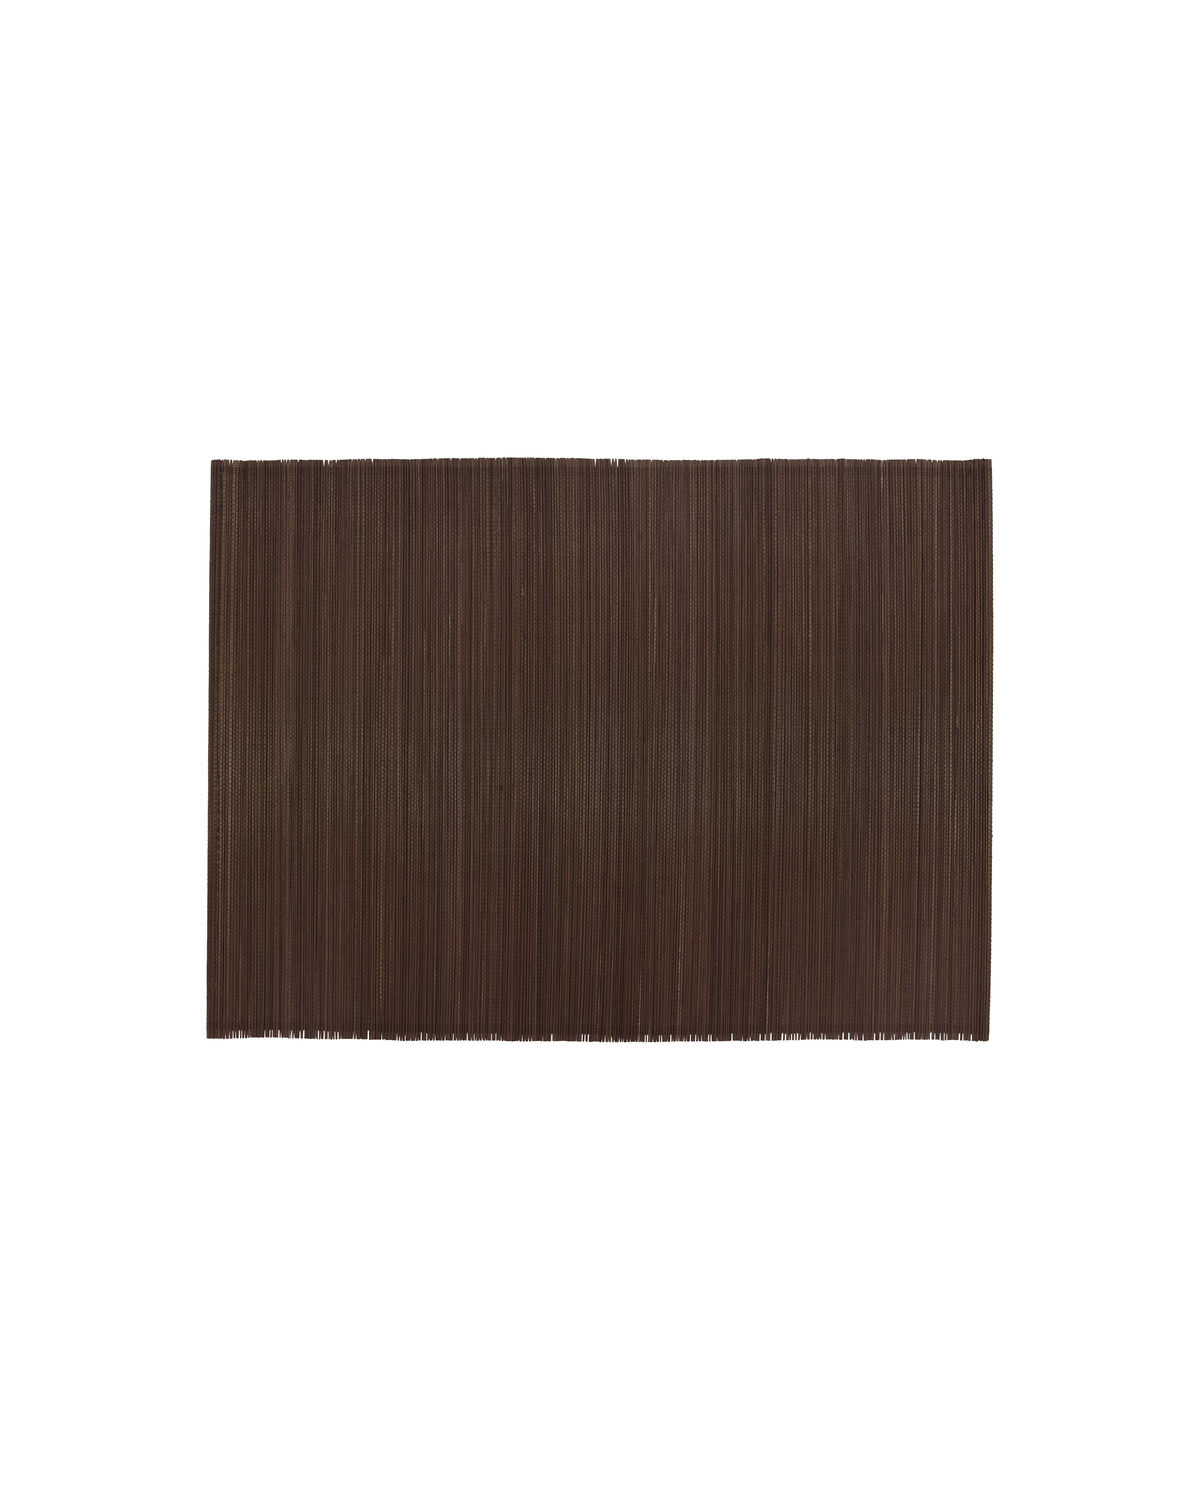 Placemat, Bamb, Brown, Pack of 4 pcs